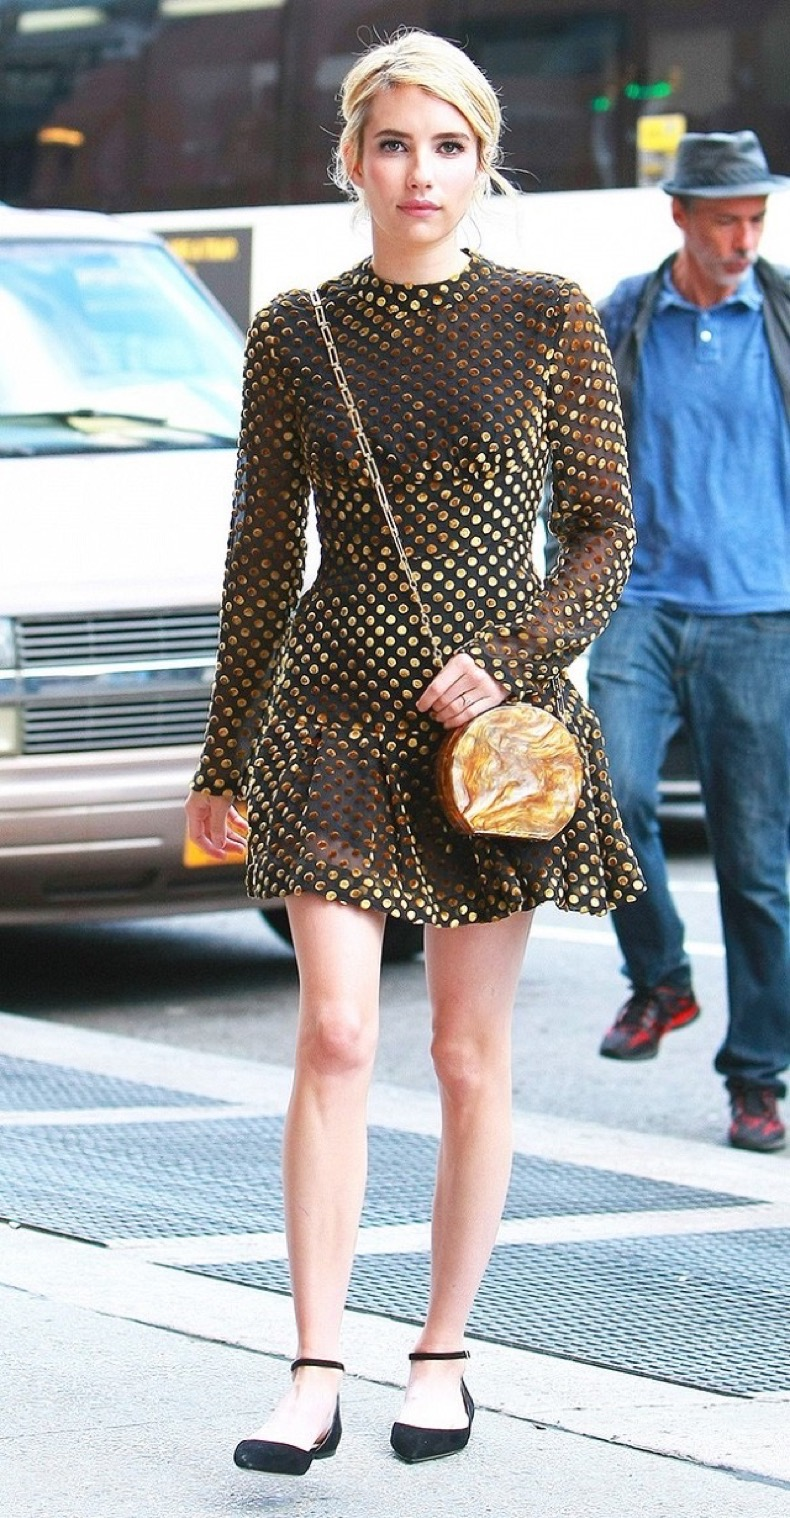 emma-roberts-is-the-most-stylish-girl-in-nyc-this-week-1834235-1468352393.640x0c